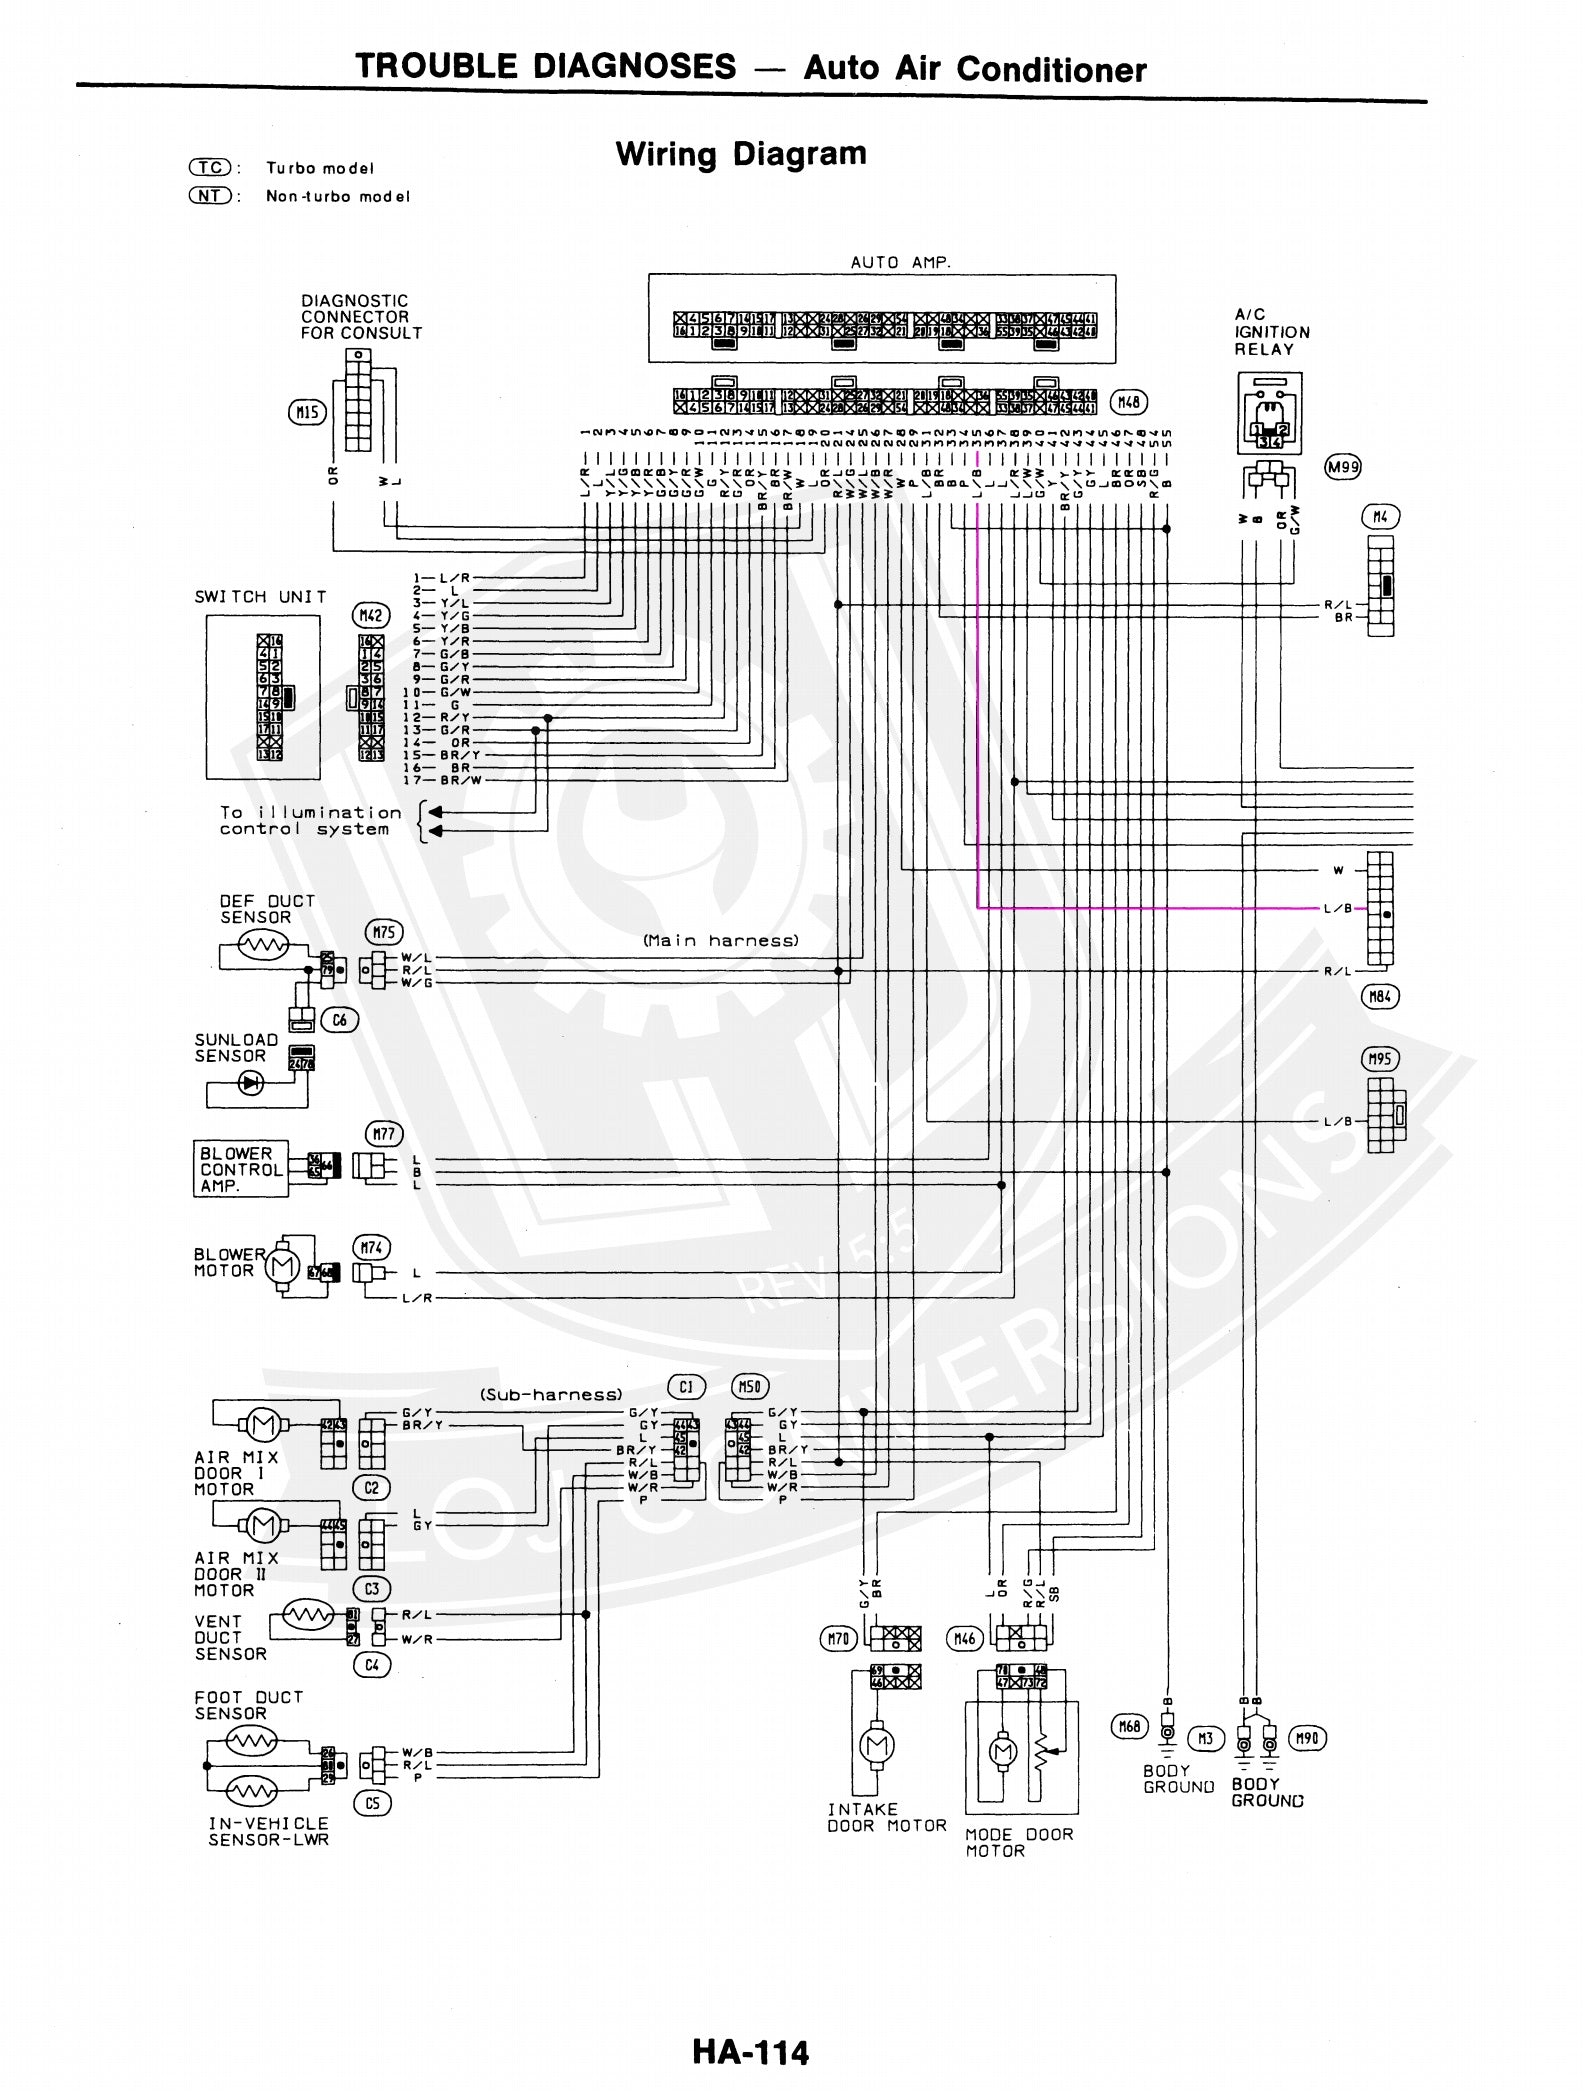 [DIAGRAM_3NM]  Nissan Z32 Wiring - 1997 Ford Ranger Fuse Box for Wiring Diagram Schematics | Z32 Wiring Diagram |  | Wiring Diagram Schematics